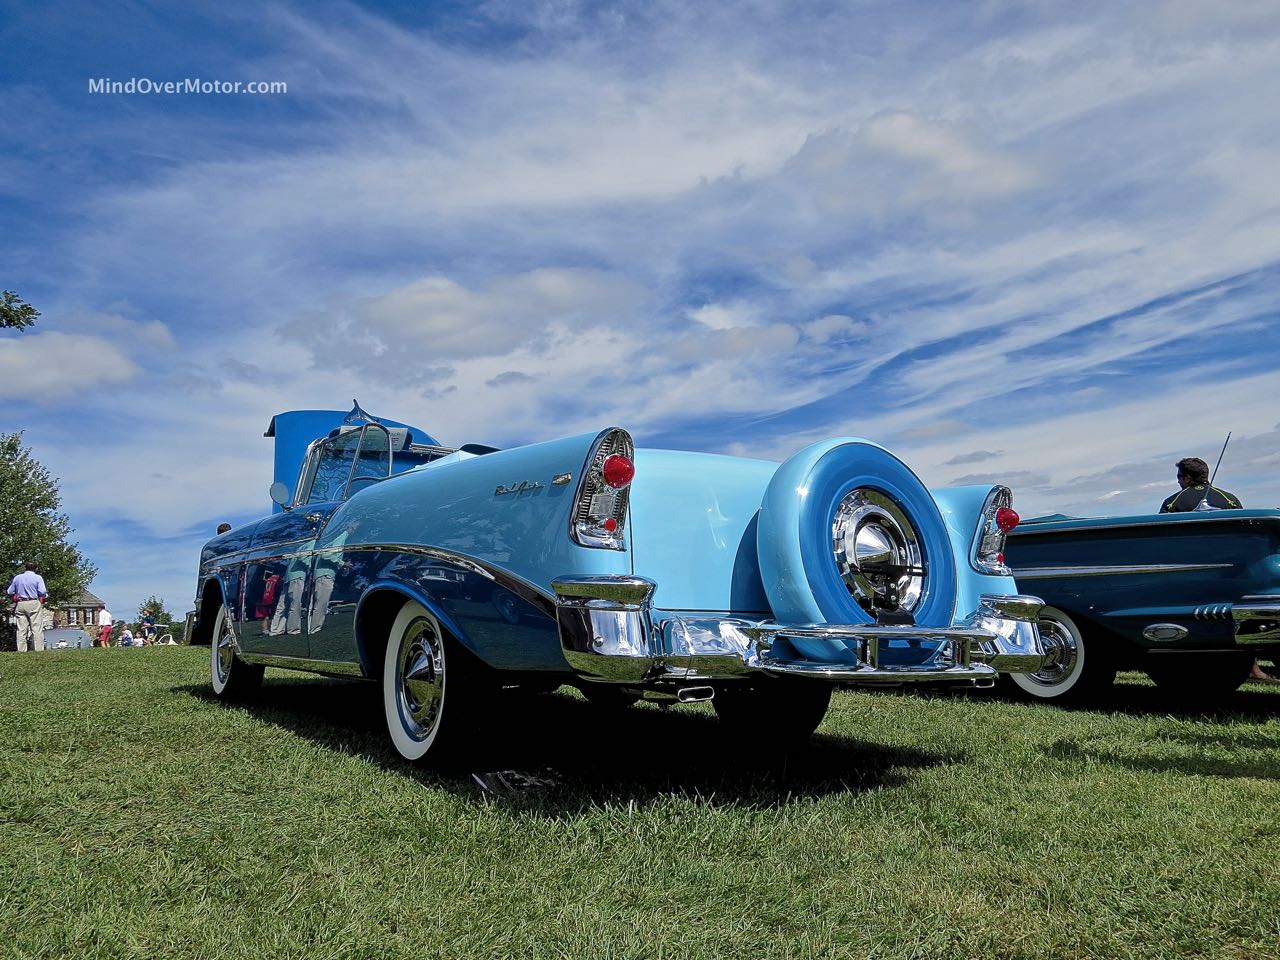 1956 Chevrolet Bel Air Convertible Rear